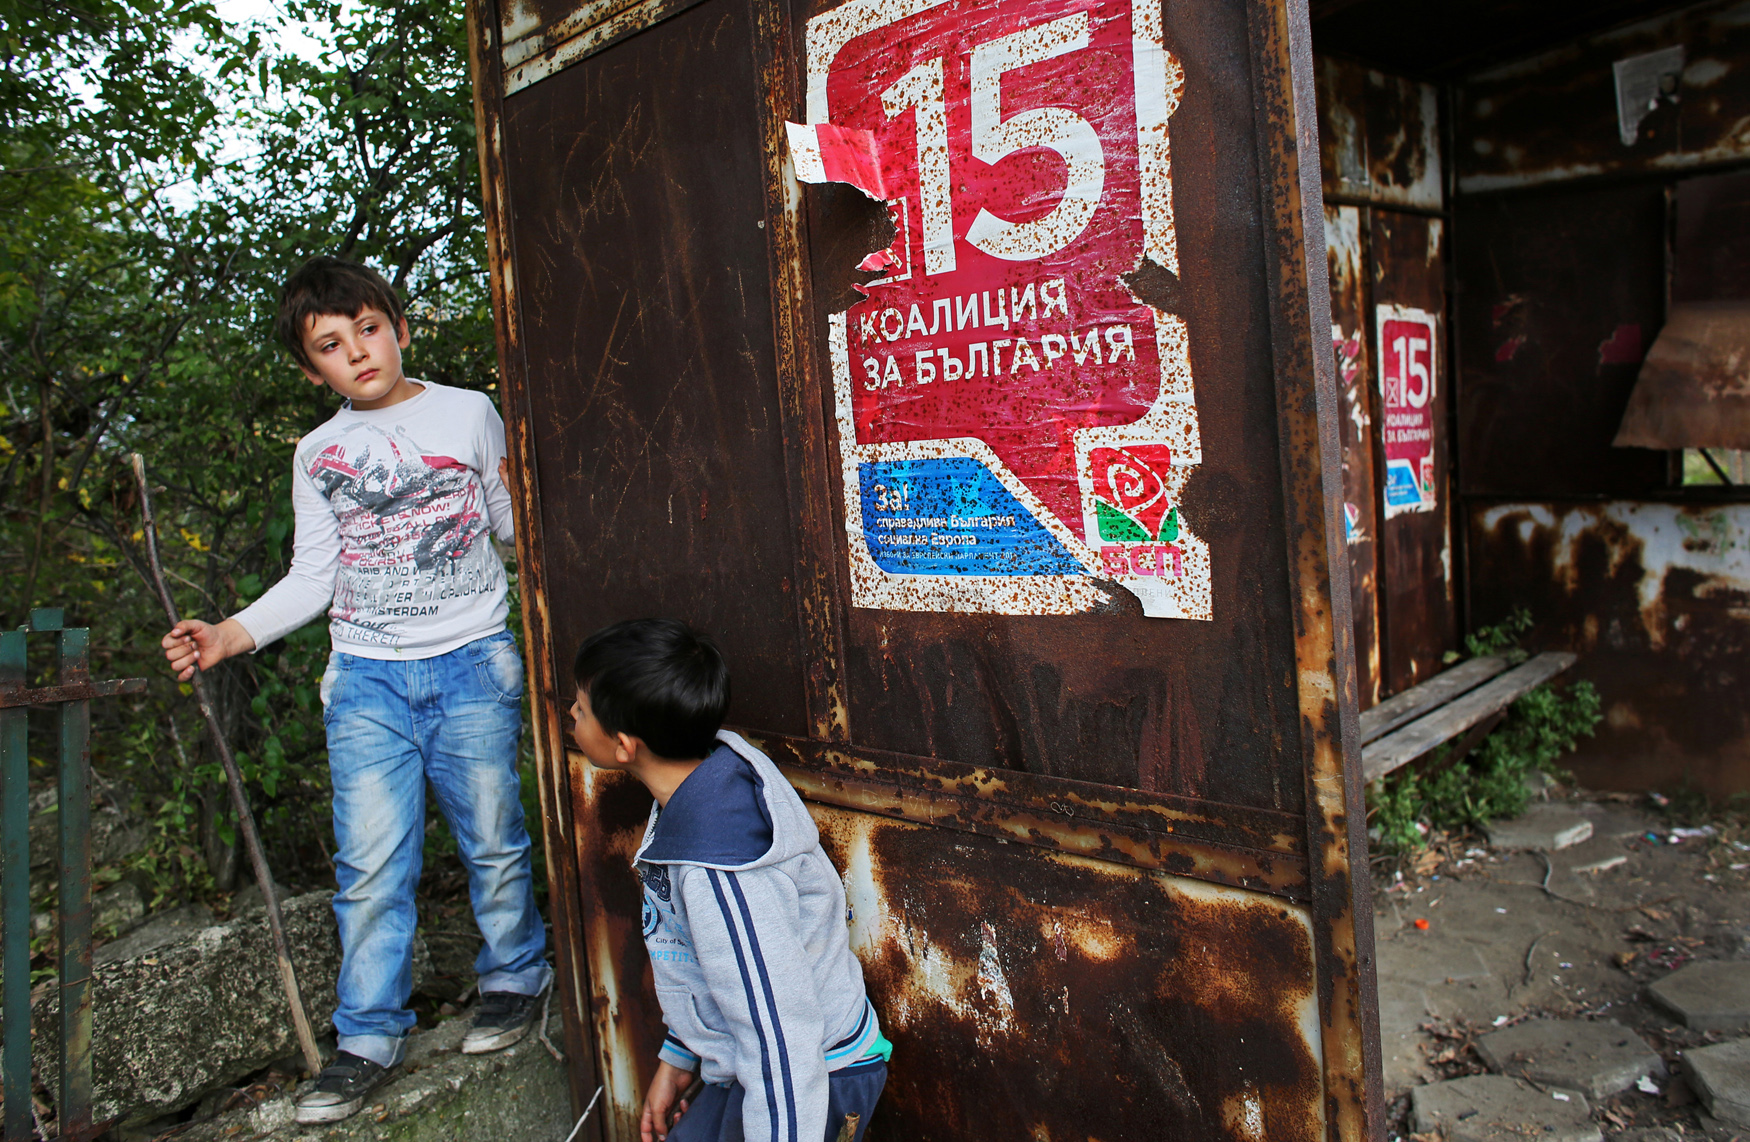 Boys rest under a poster for Bulgaria's Socialist party on a rusty bus stop on October 17th, 2014, in Rabrovo - the only village with a hospital near Kanitz, a nearly abandoned village of 6. Bulgaria has the most extreme population decline in the world — much due to post-1989 emigration, high death rates and low birth rates. There are so few people of child-bearing age in the nation that population statistics project a 30-percent decrease by 2060, from 7.2 million to just over 5 million. In other words,Bulgaria's population declines by 164 people a day, or 60,000 people a year — 60 percent of them aged over 65.